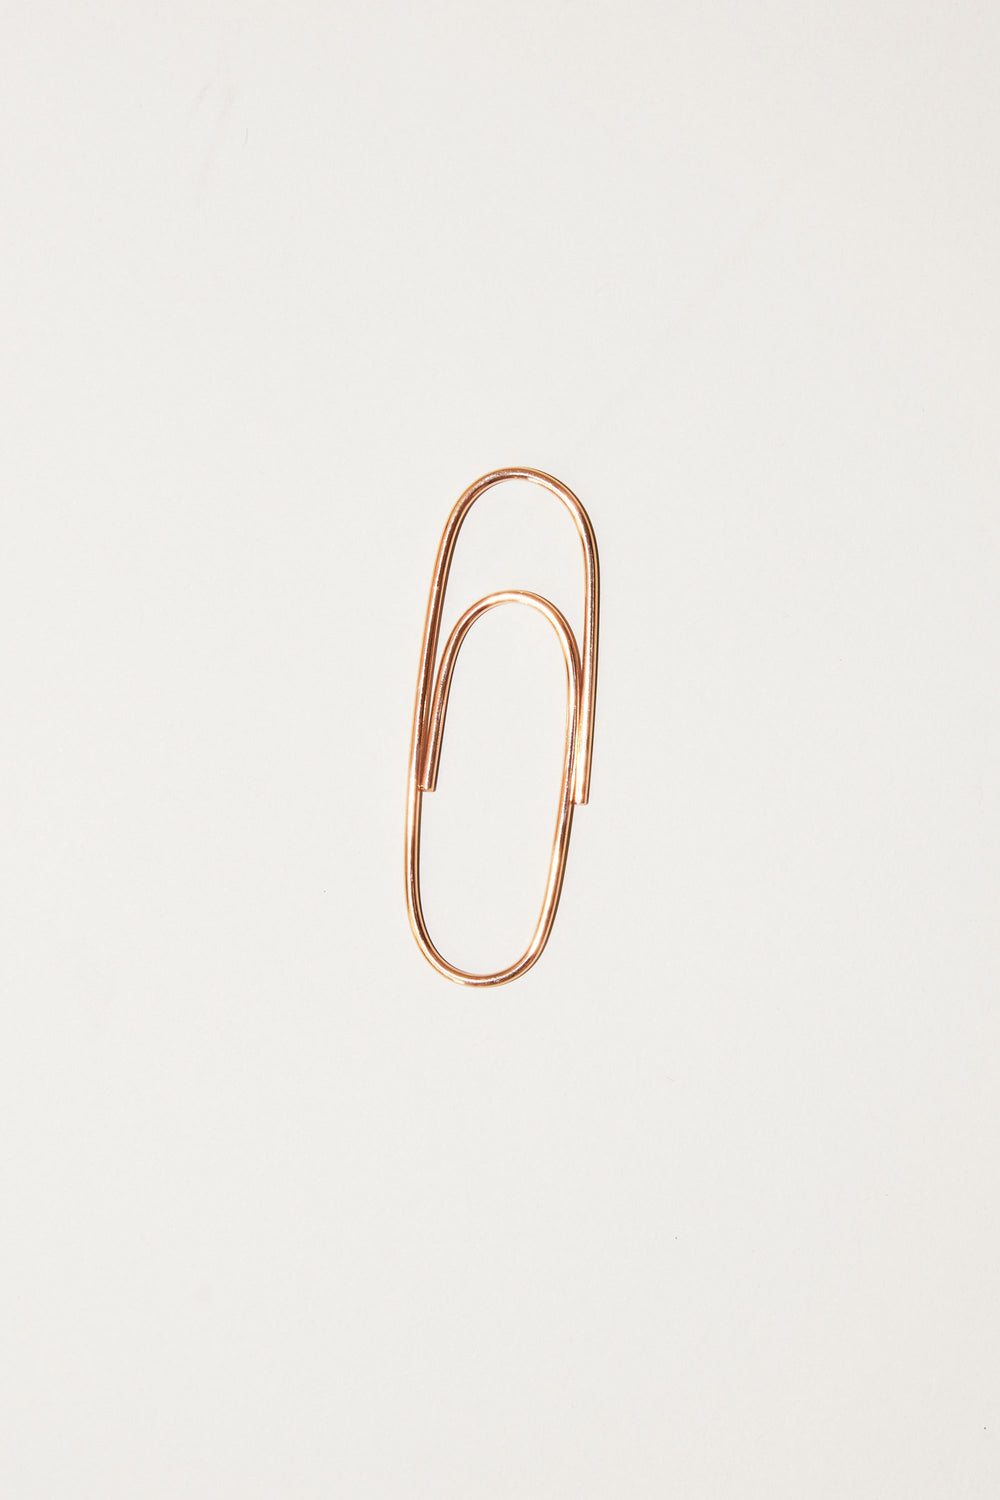 Biis Big Paperclip in Rose Gold Plated Sterling Silver